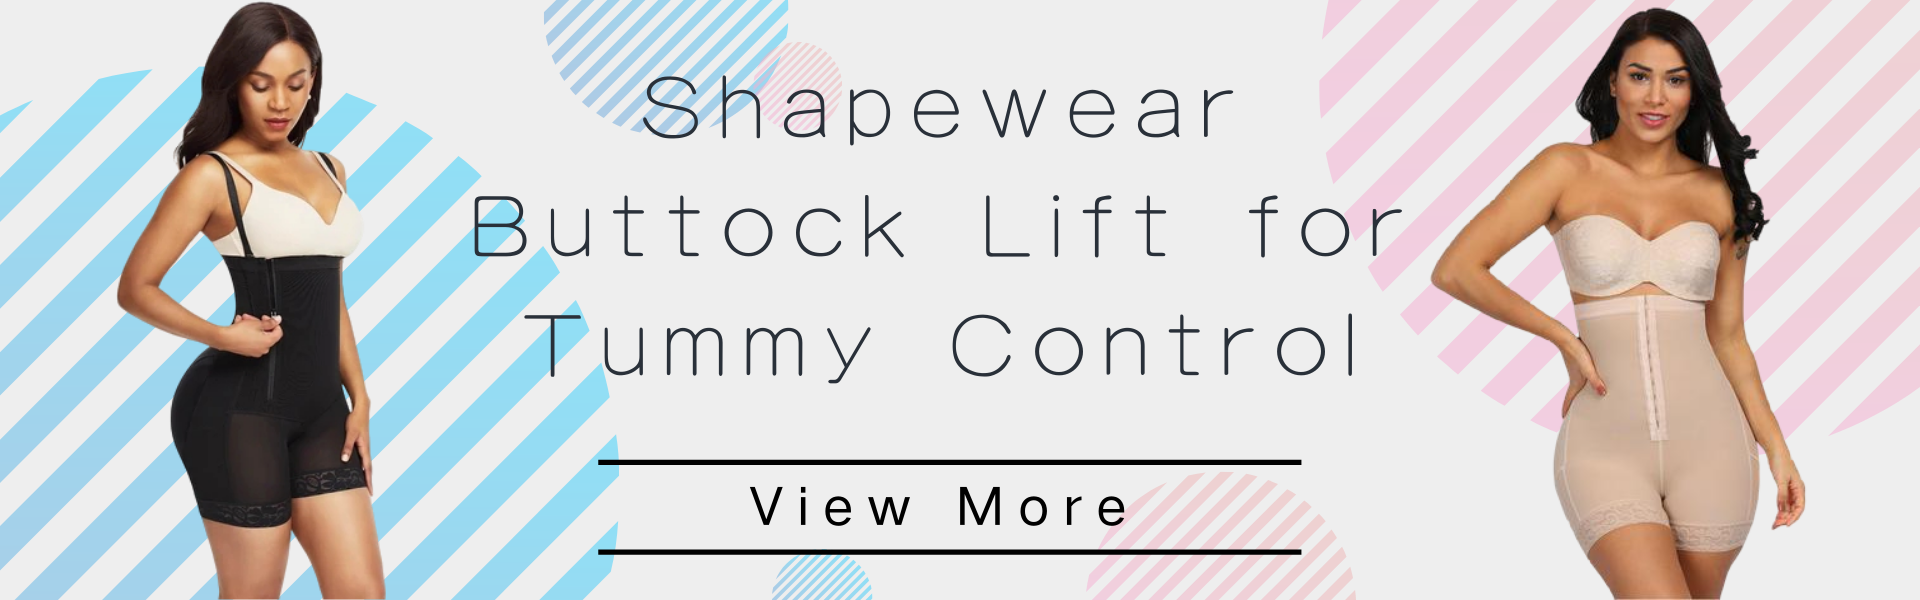 Shapewear Buttock Lift for Tummy Control